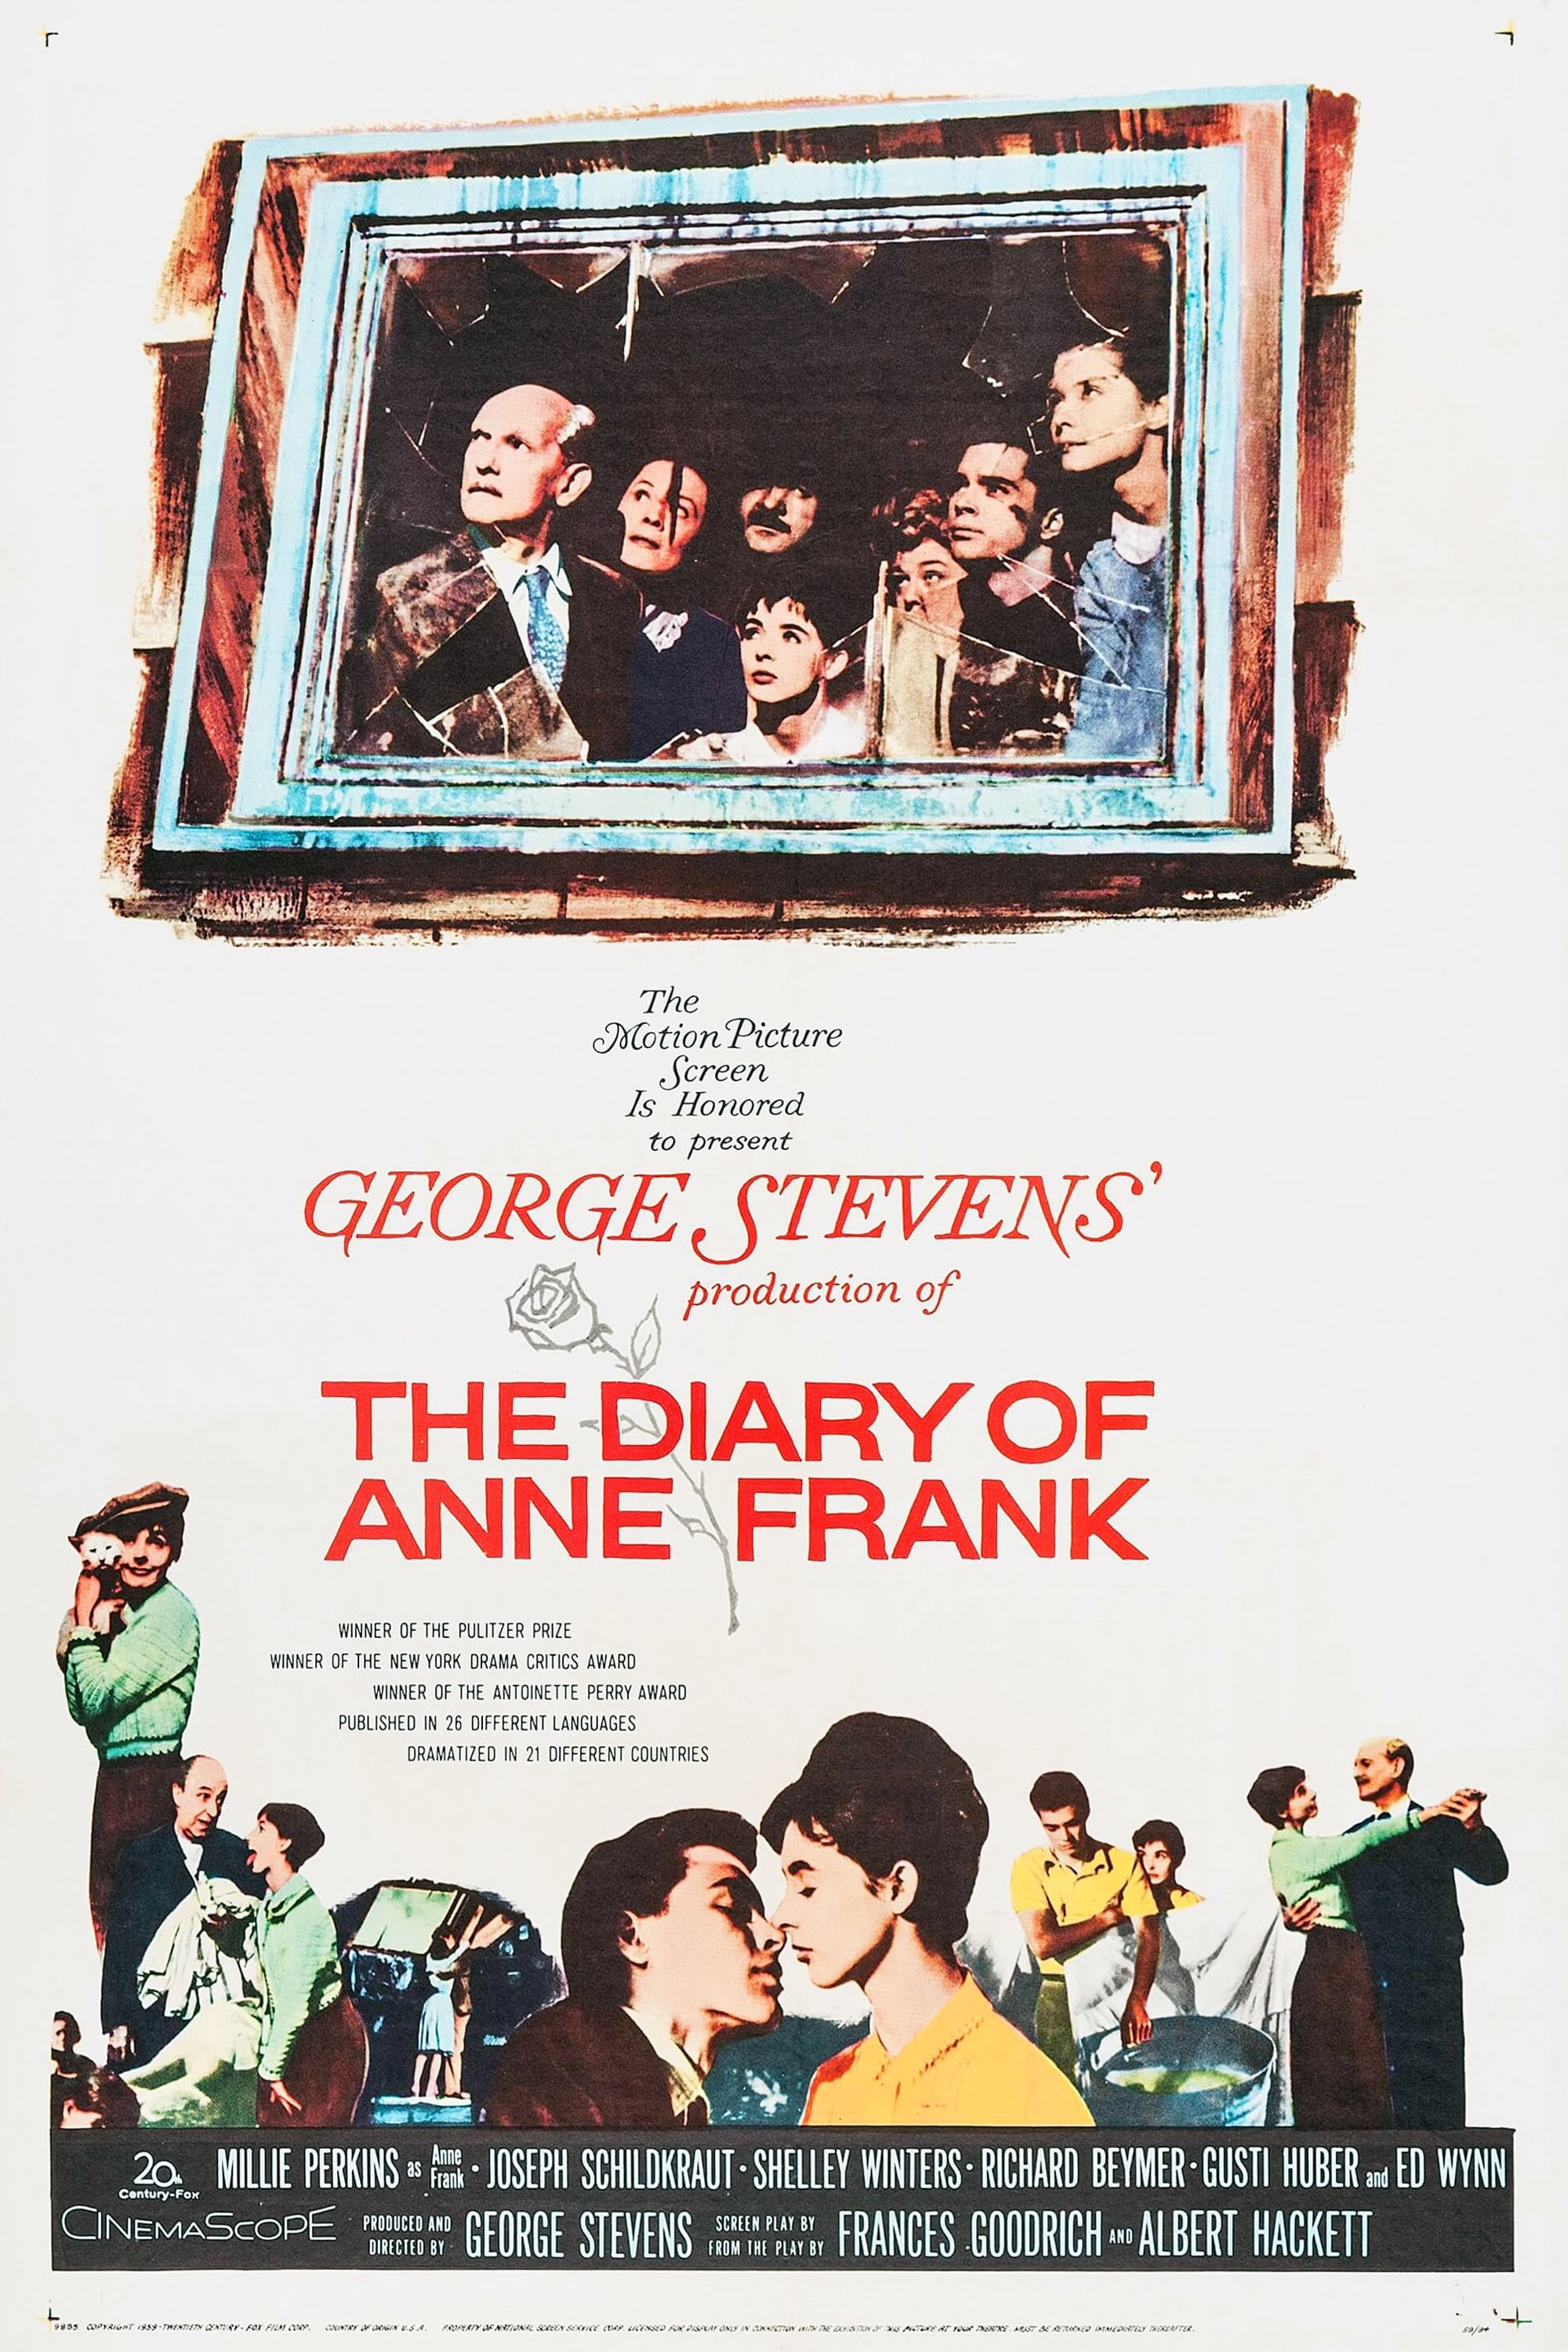 the diary of anne frank rtl The best study guide to the diary of anne frank on the planet, from the creators of sparknotes get the summaries, analysis, and quotes you need.